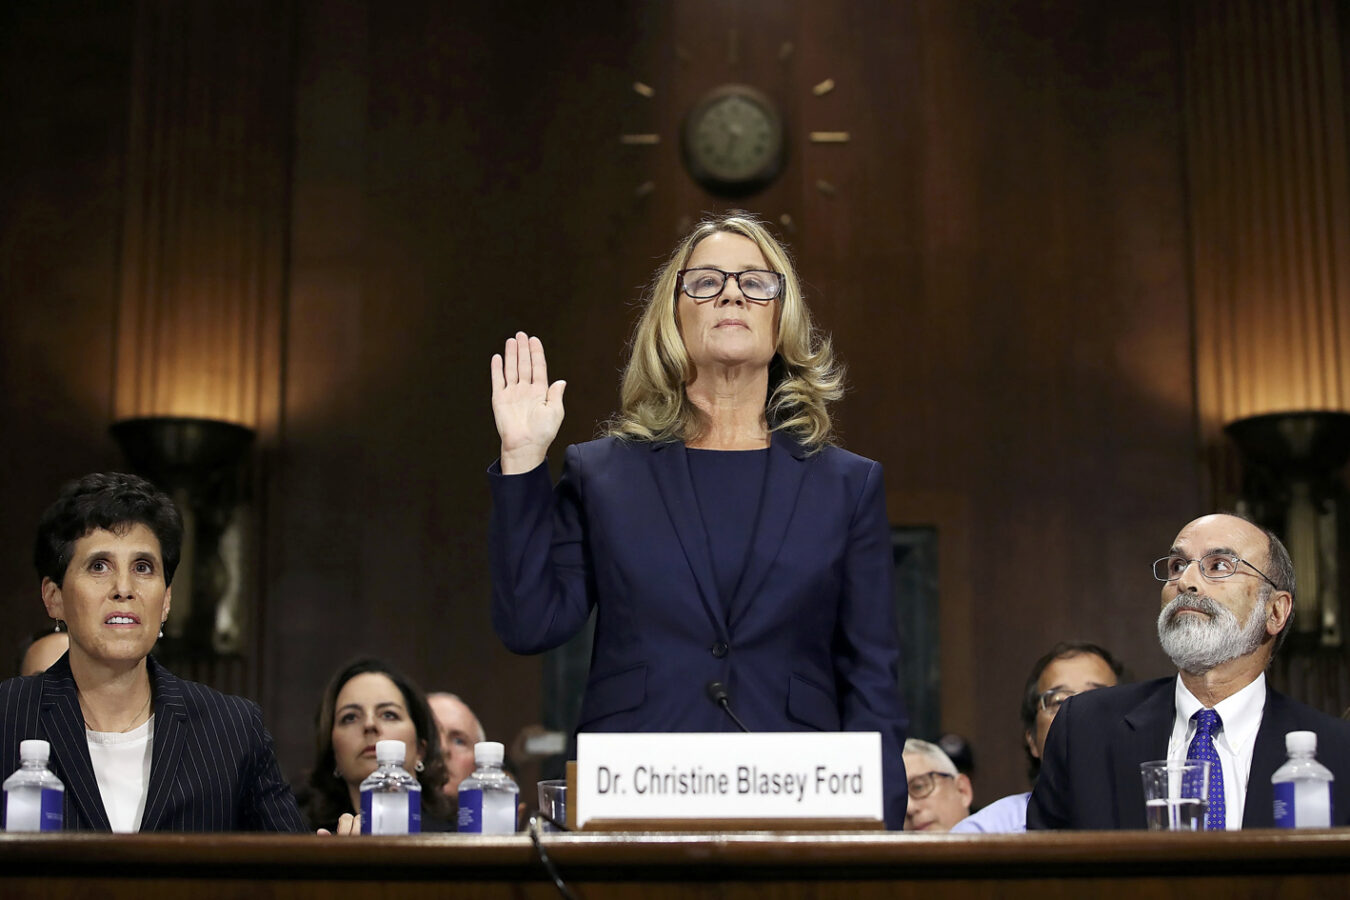 Dr Ford taking oath